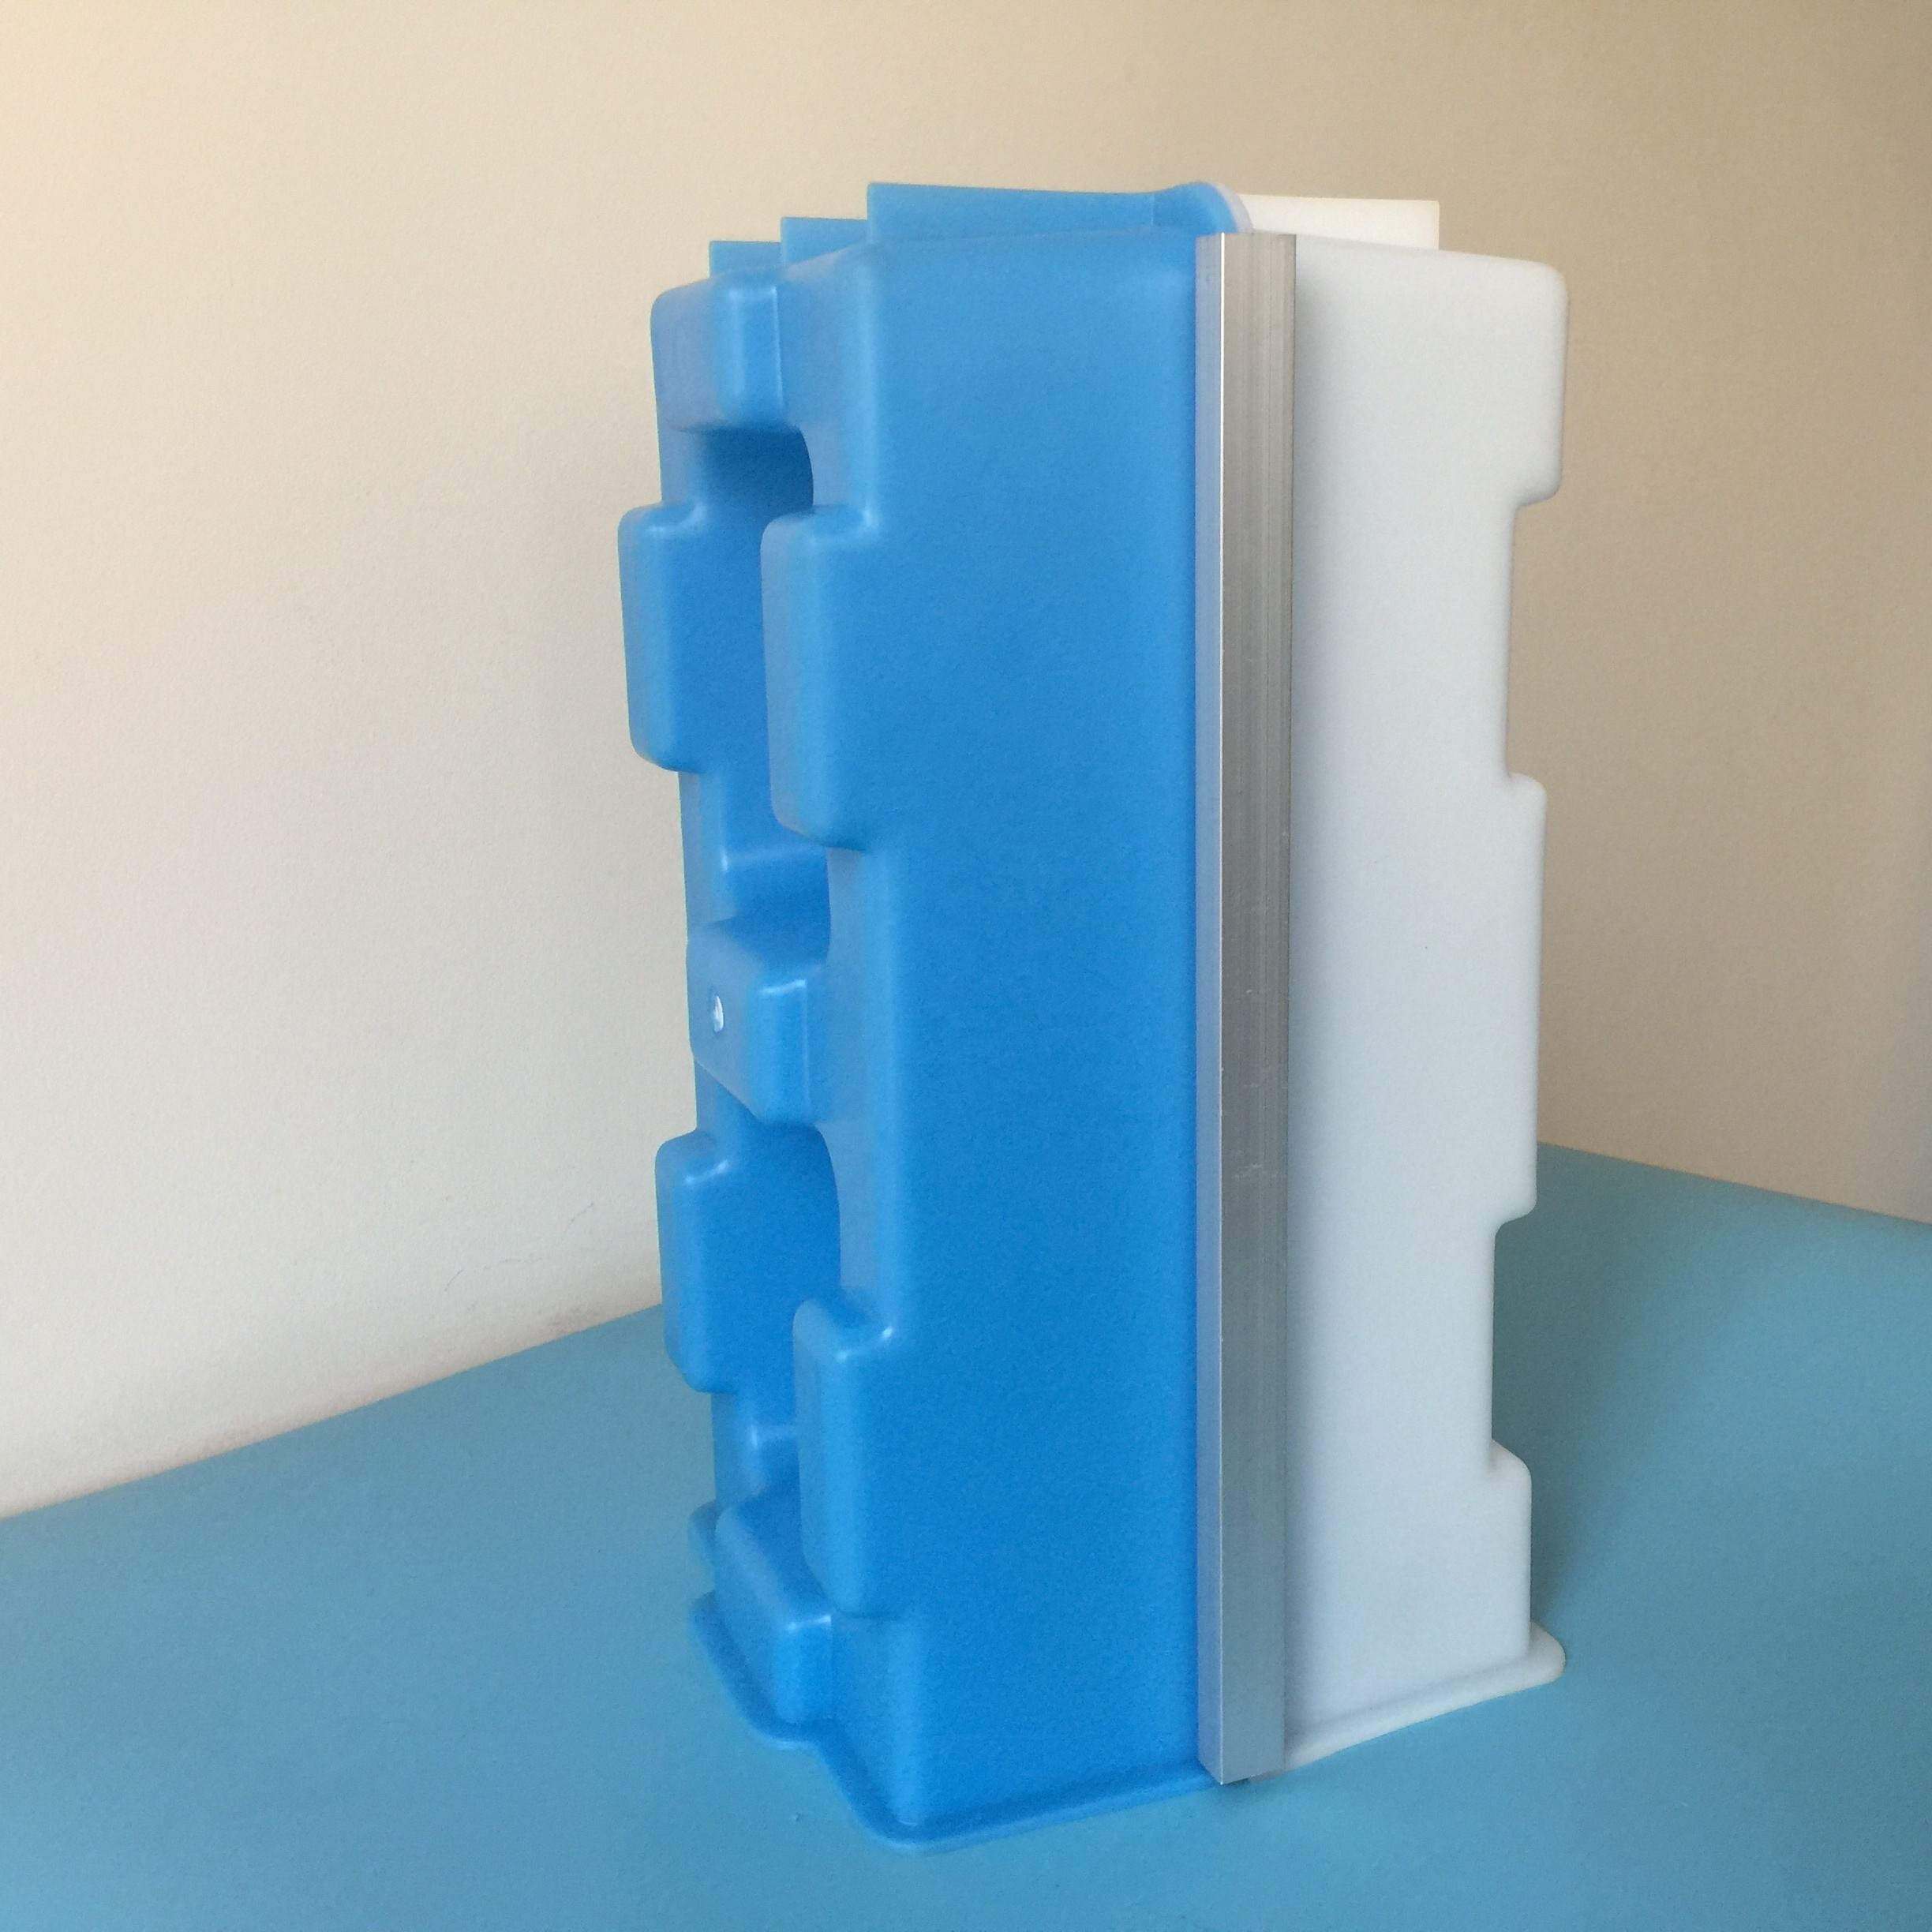 300*150*150mm Hollow Interlocking Block Plastic Molds